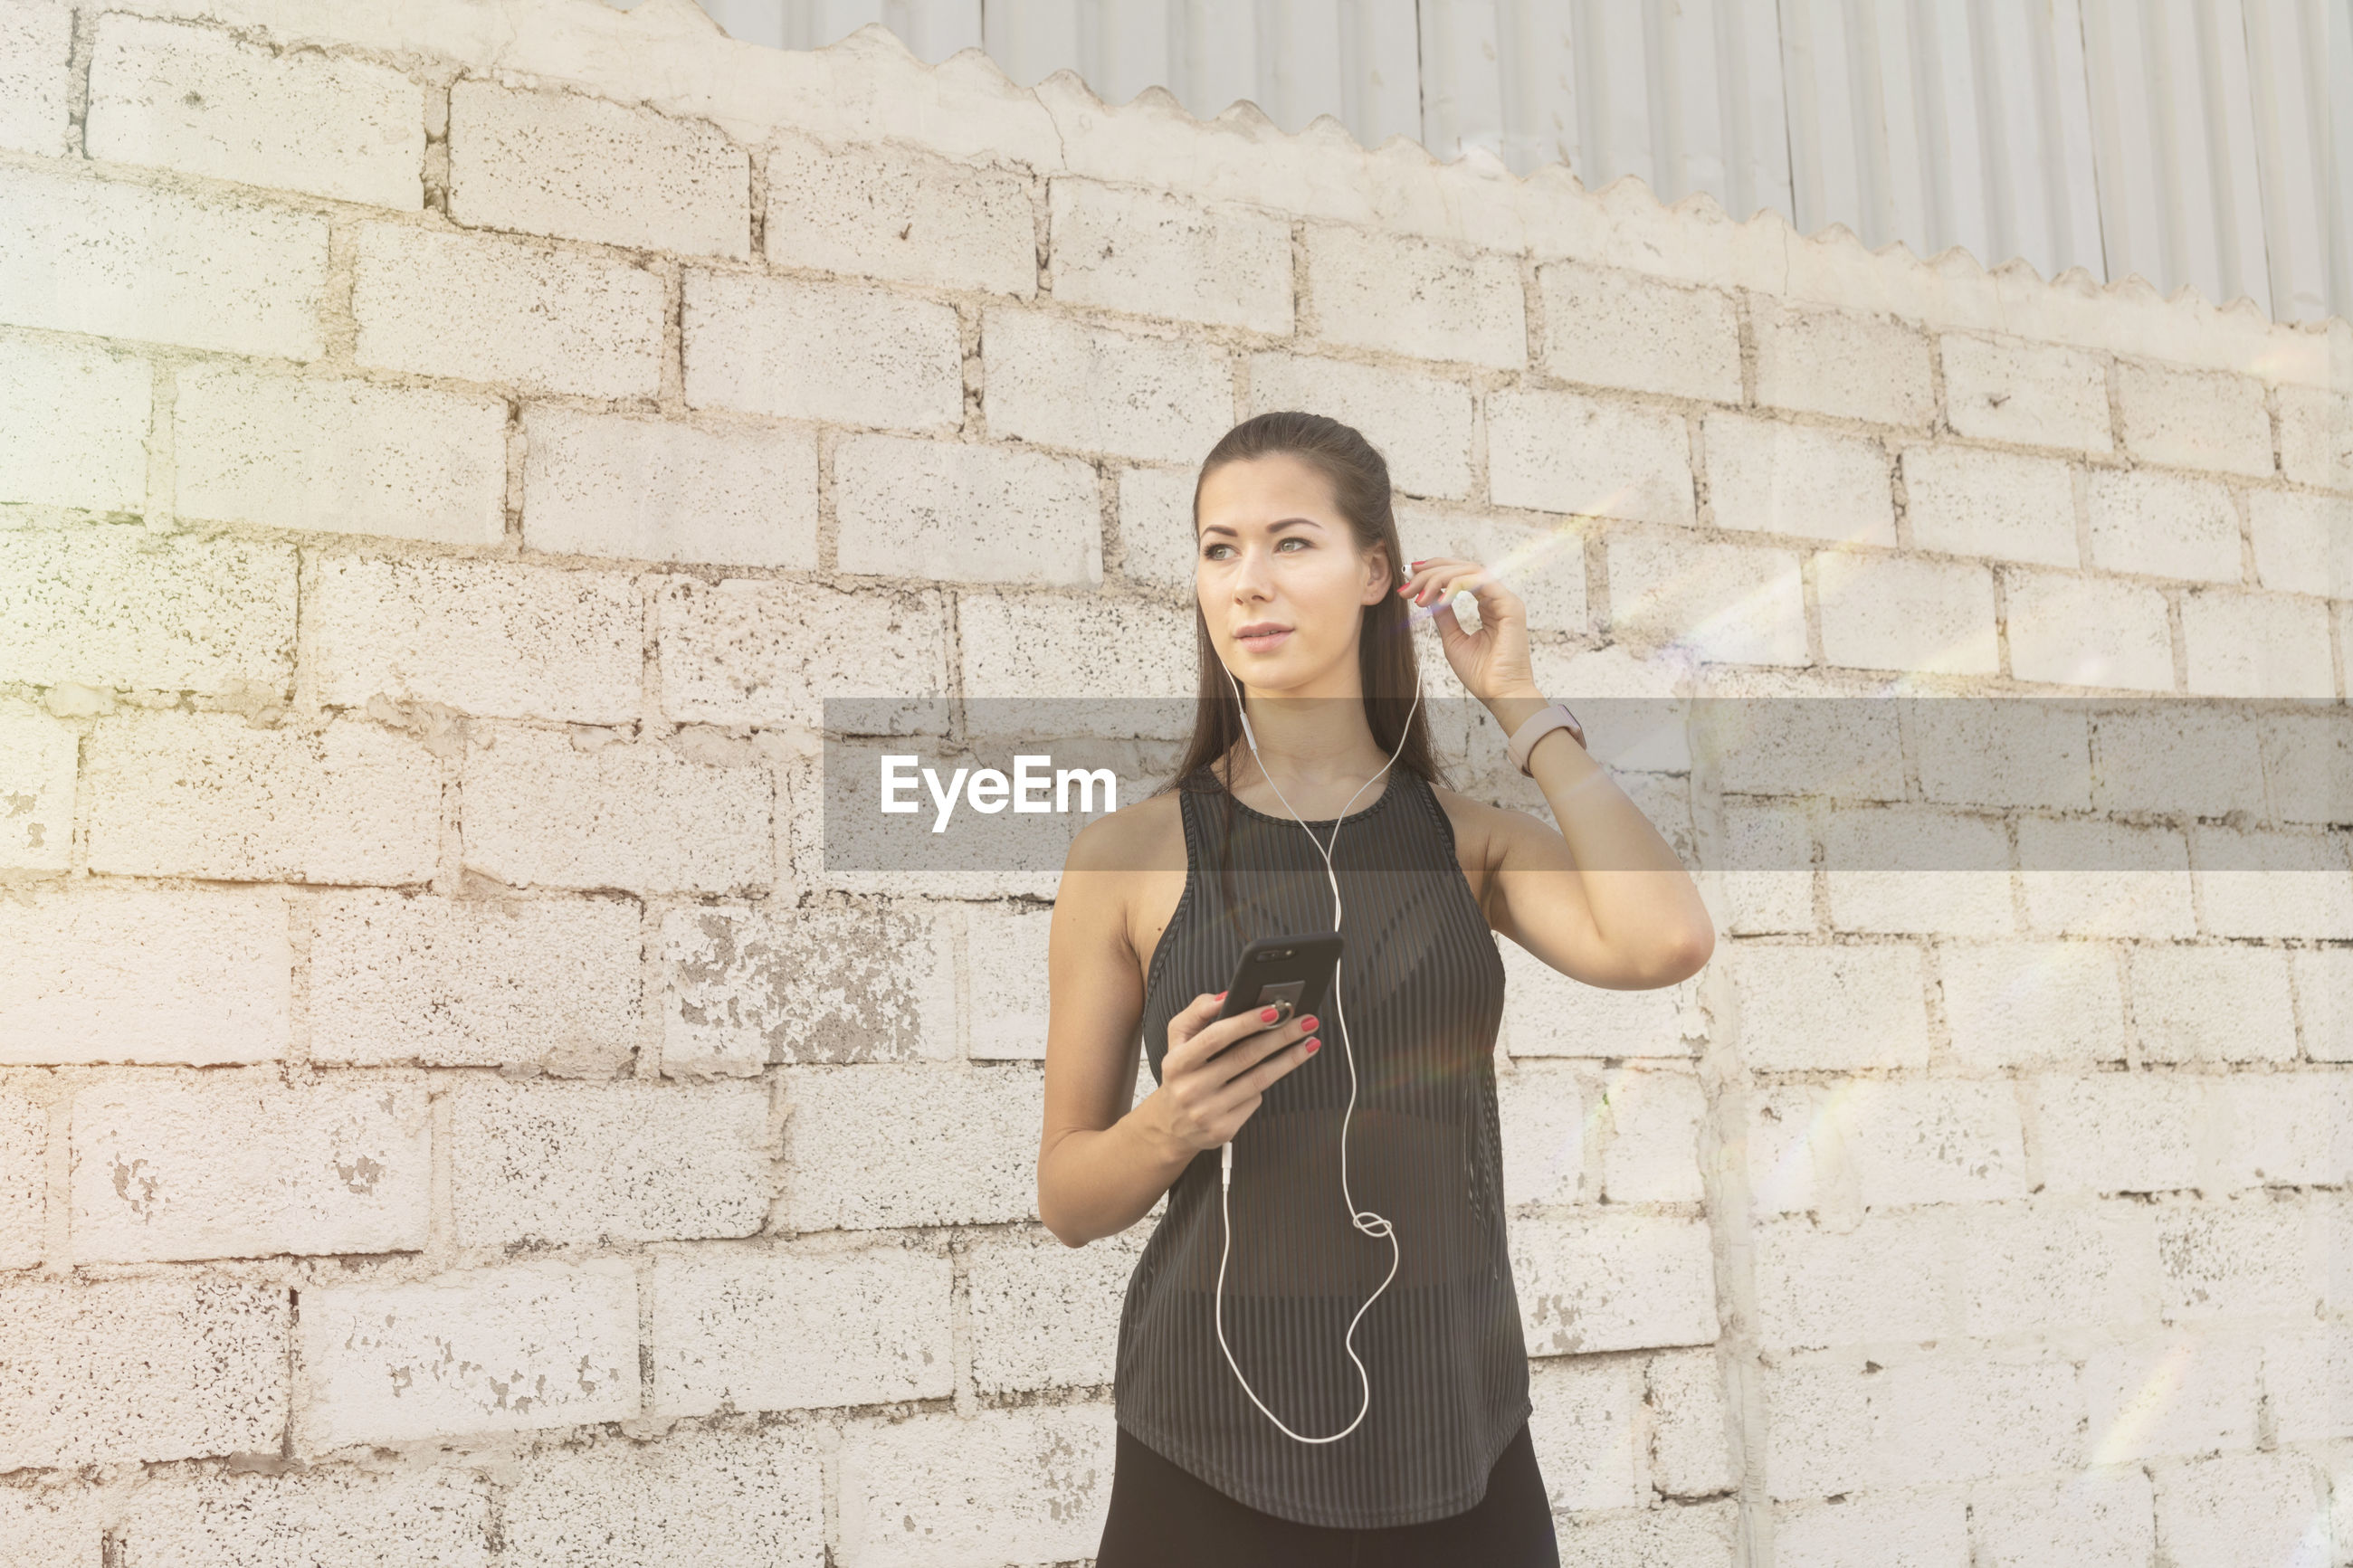 Woman listening music while standing against brick wall